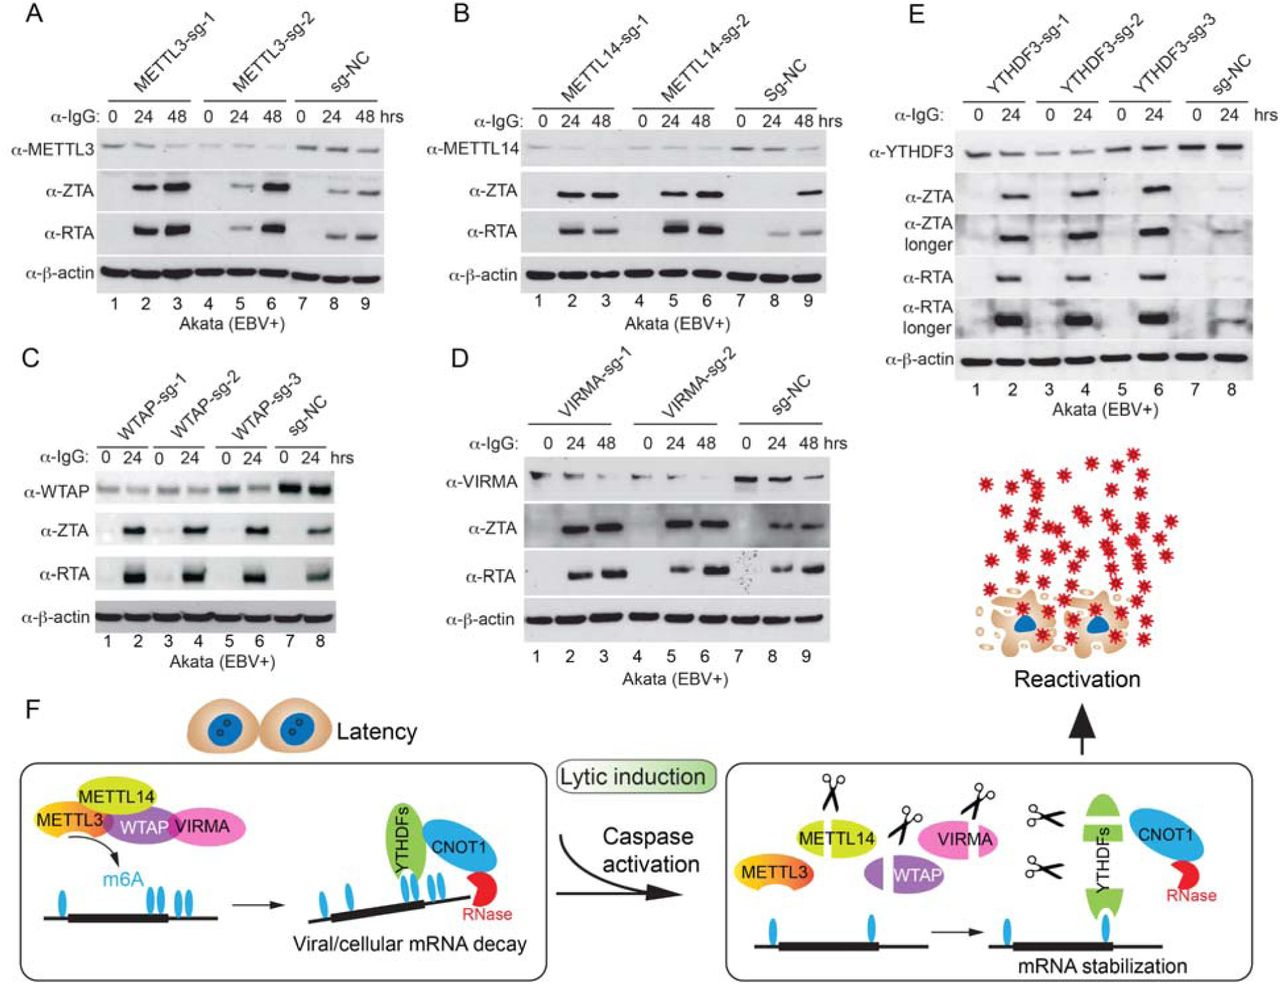 Depletion of m 6 A writers and reader YTHDF3 promotes EBV reactivation. (A-E) Akata (EBV+) cells were used to establish stable cell lines using 2-3 different guide RNA constructs targeting METTL3 (A), METTL14 (B), WTAP (C), VIRMA (D) and YTHDF3 (E) and a non-targeting control (sg-NC). The cells were untreated or lytically induced with anti-IgG-mediated BCR activation. Cellular and viral protein expression levels were monitored by Western Blot using antibodies as indicated. (F) Model summarizing the regulation of m 6 A RNA modification pathway in EBV life cycle. During latency, m 6 A writers deposit the methyl group onto key viral and cellular mRNAs which are subsequently destabilized by m 6 A readers. Upon reactivation, on one hand, cellular caspases cleave the writers to limit the m 6 A modification process, and on the other hand, caspases cleave readers to limits RNA decay by CNOT-CCR4 complex, which together drive the production of massive amounts of viruses. See also Figure S7 .